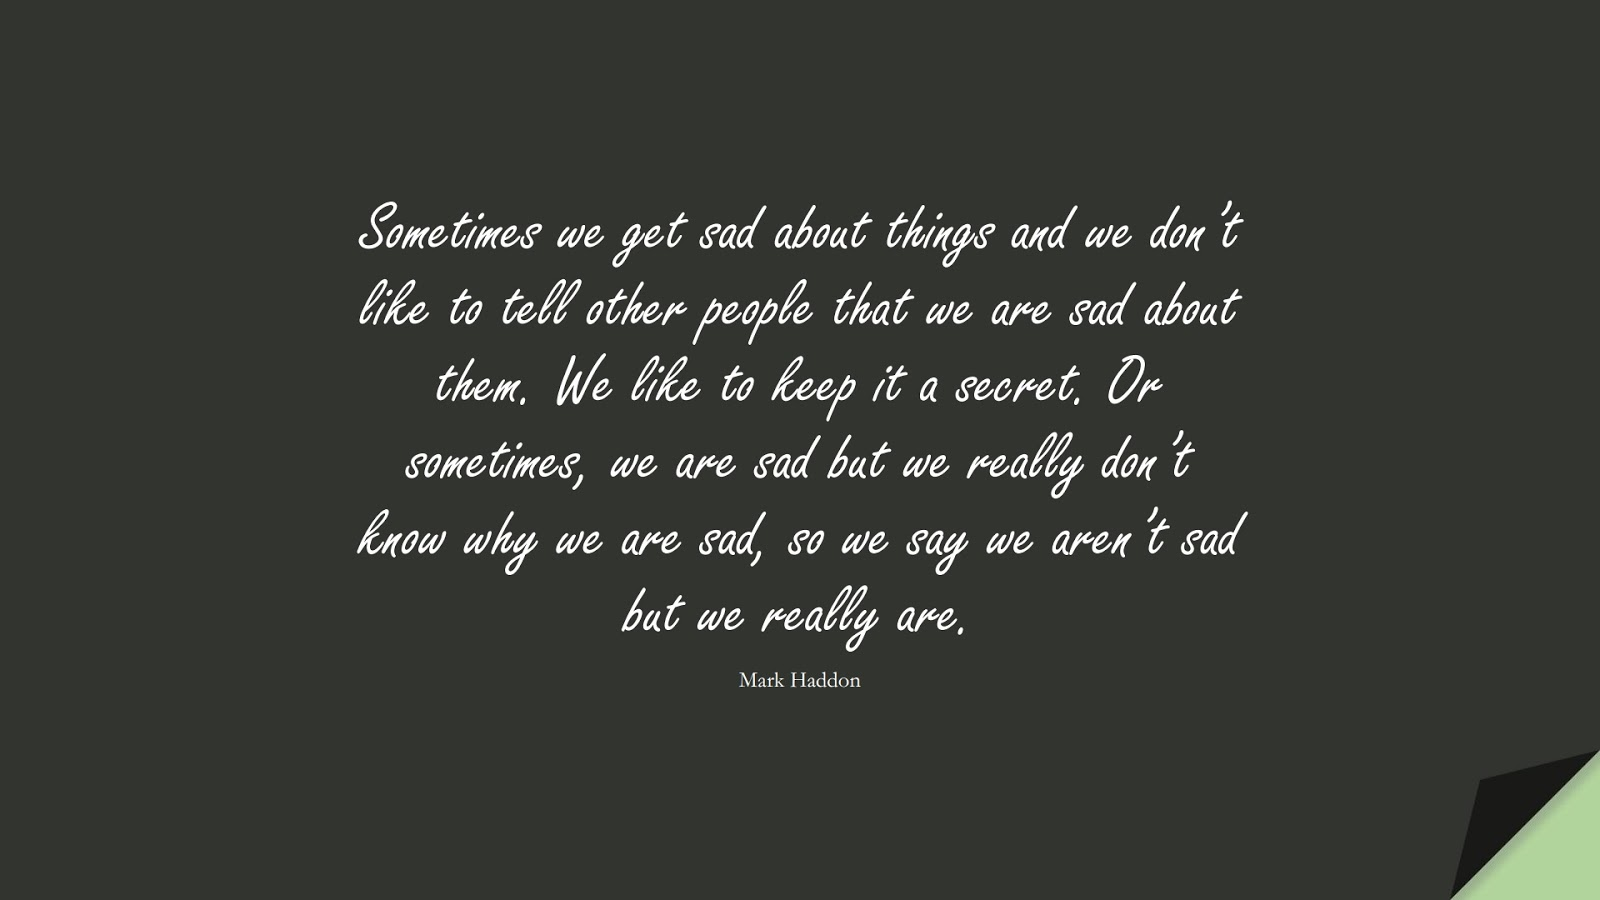 Sometimes we get sad about things and we don't like to tell other people that we are sad about them. We like to keep it a secret. Or sometimes, we are sad but we really don't know why we are sad, so we say we aren't sad but we really are. (Mark Haddon);  #SadLoveQuotes